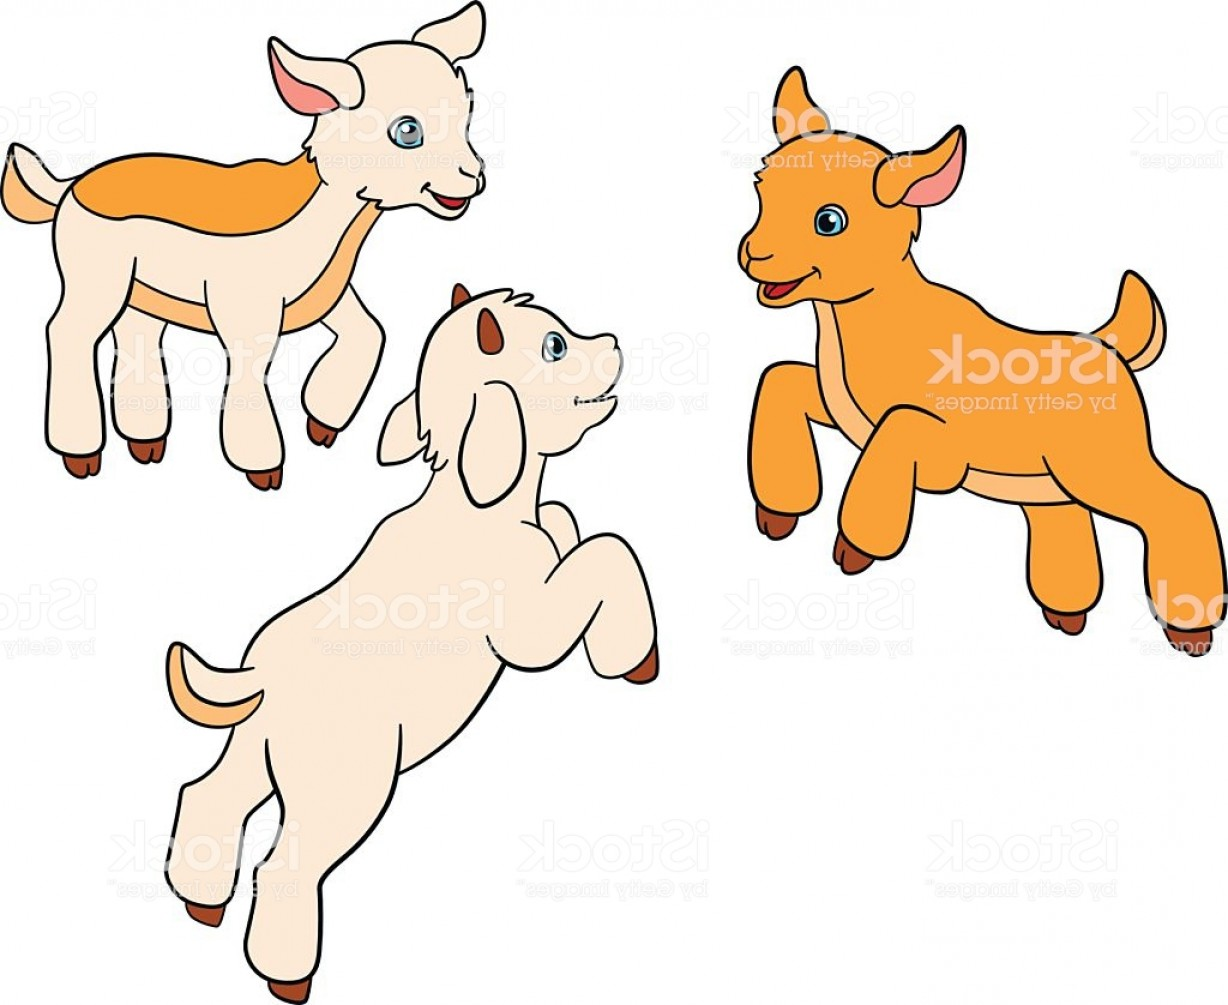 Baby goat face clipart image royalty free download Cartoon Farm Animals For Kids Three Baby Goats Gm   SOIDERGI image royalty free download